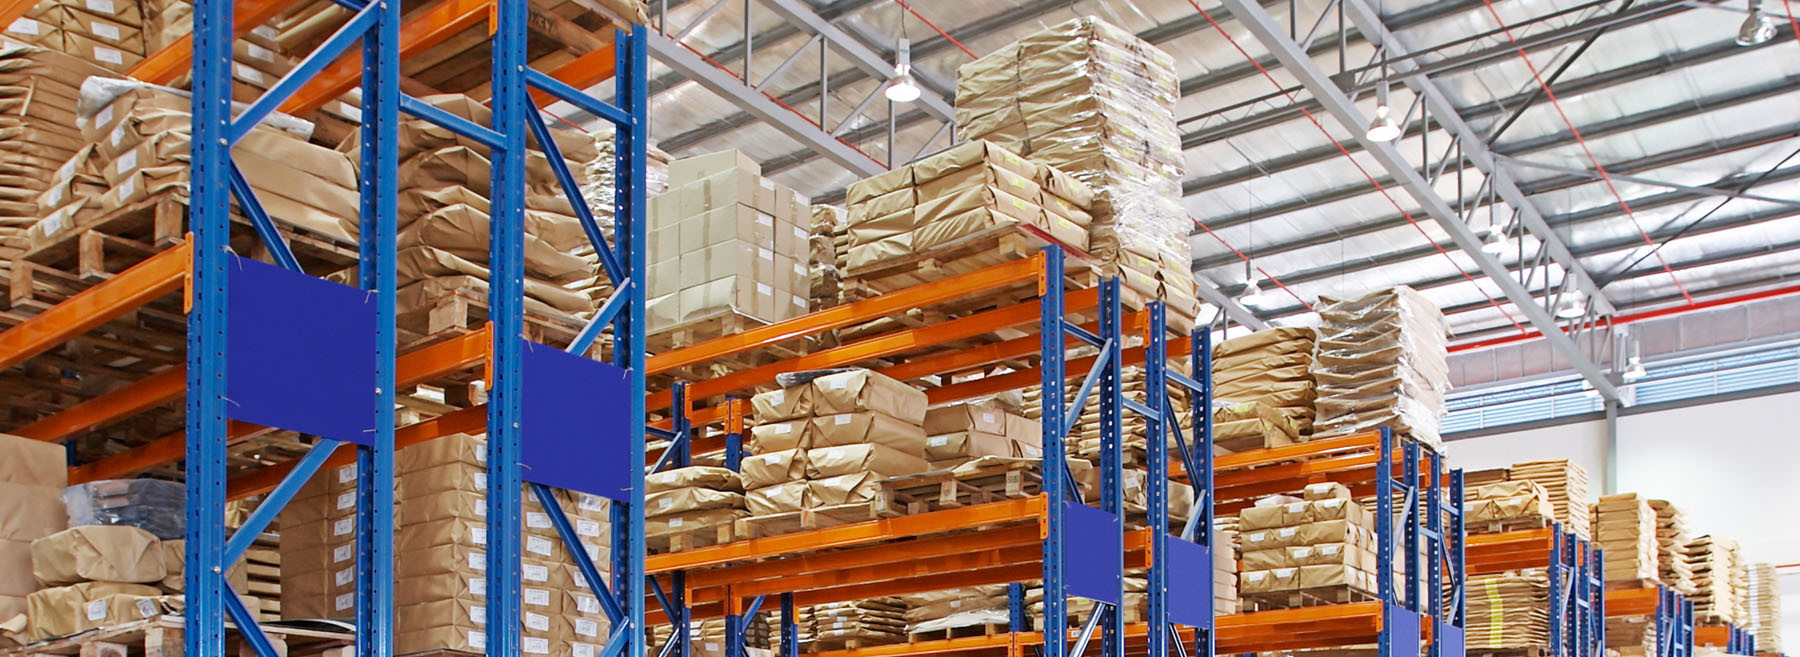 The picture shows a warehouse and shelfs.